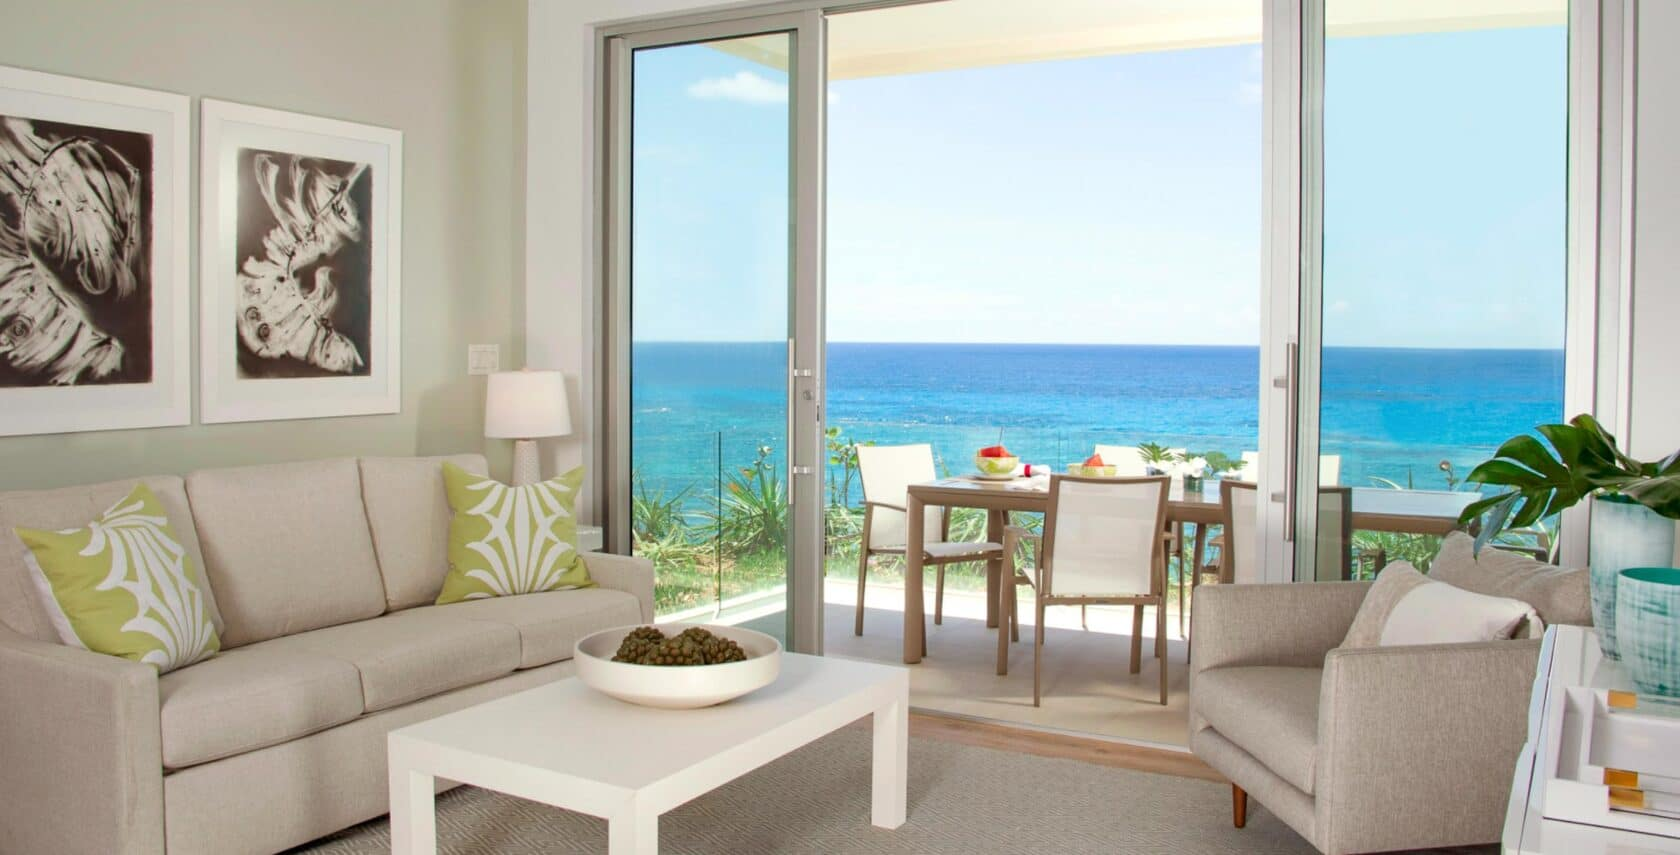 A living area with large glass doors leading to an outdoor dining area with an ocean view.